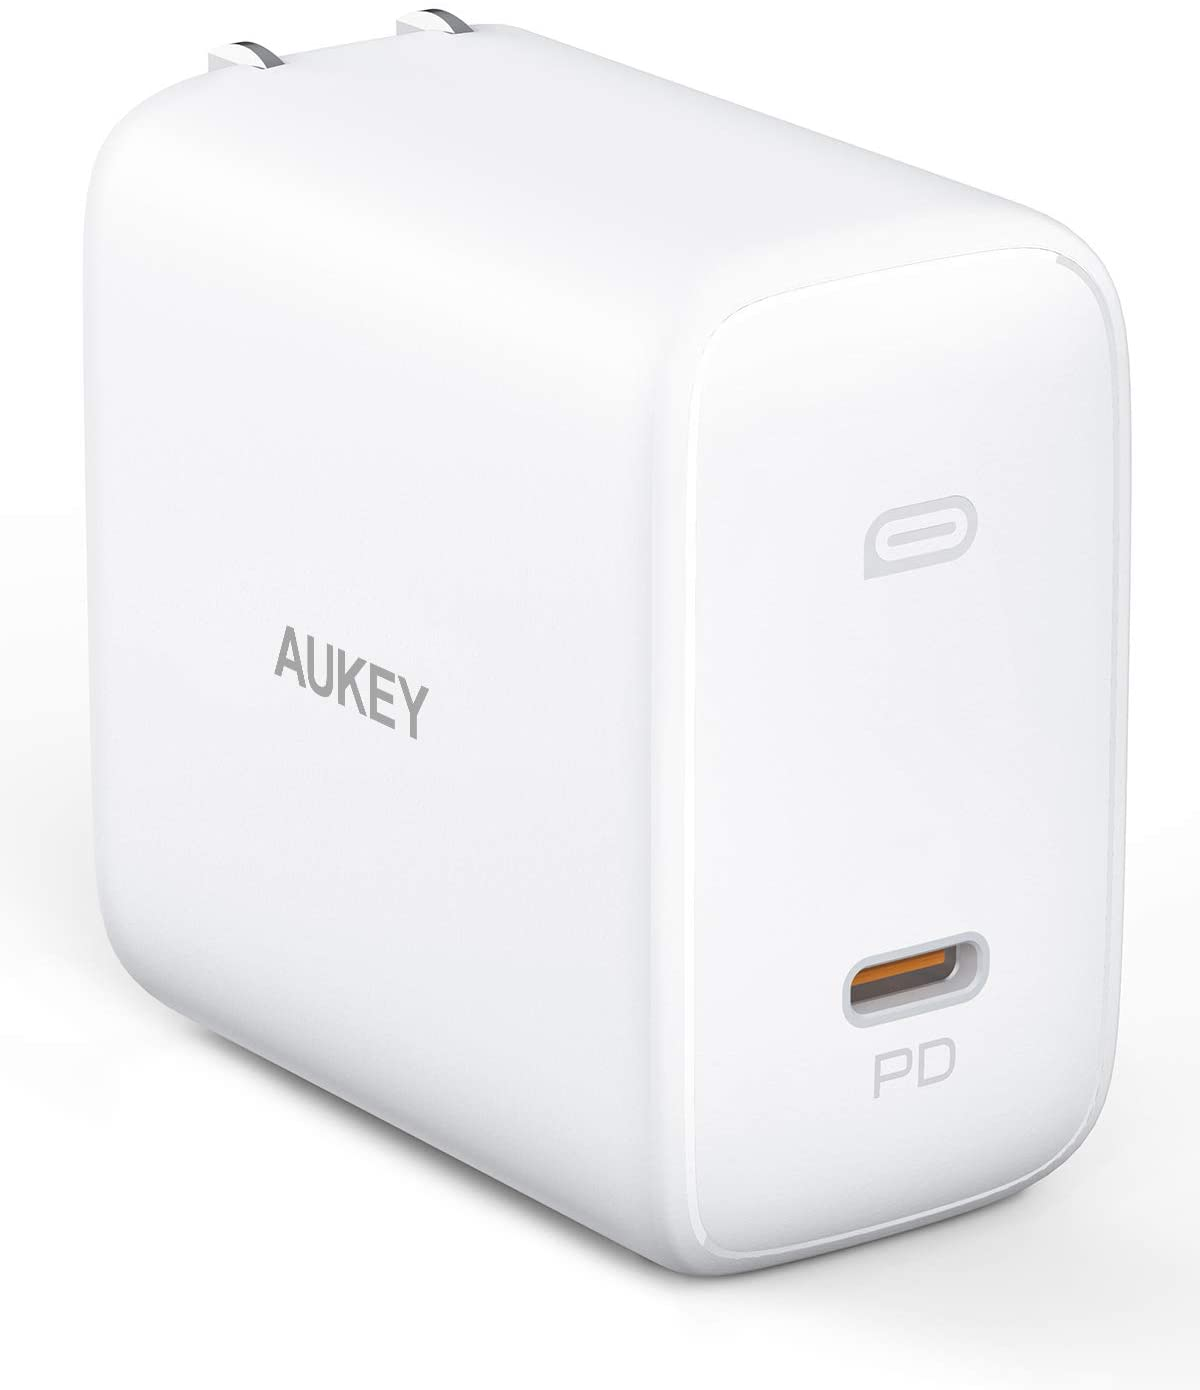 AUKEY Omnia USB-C Charger